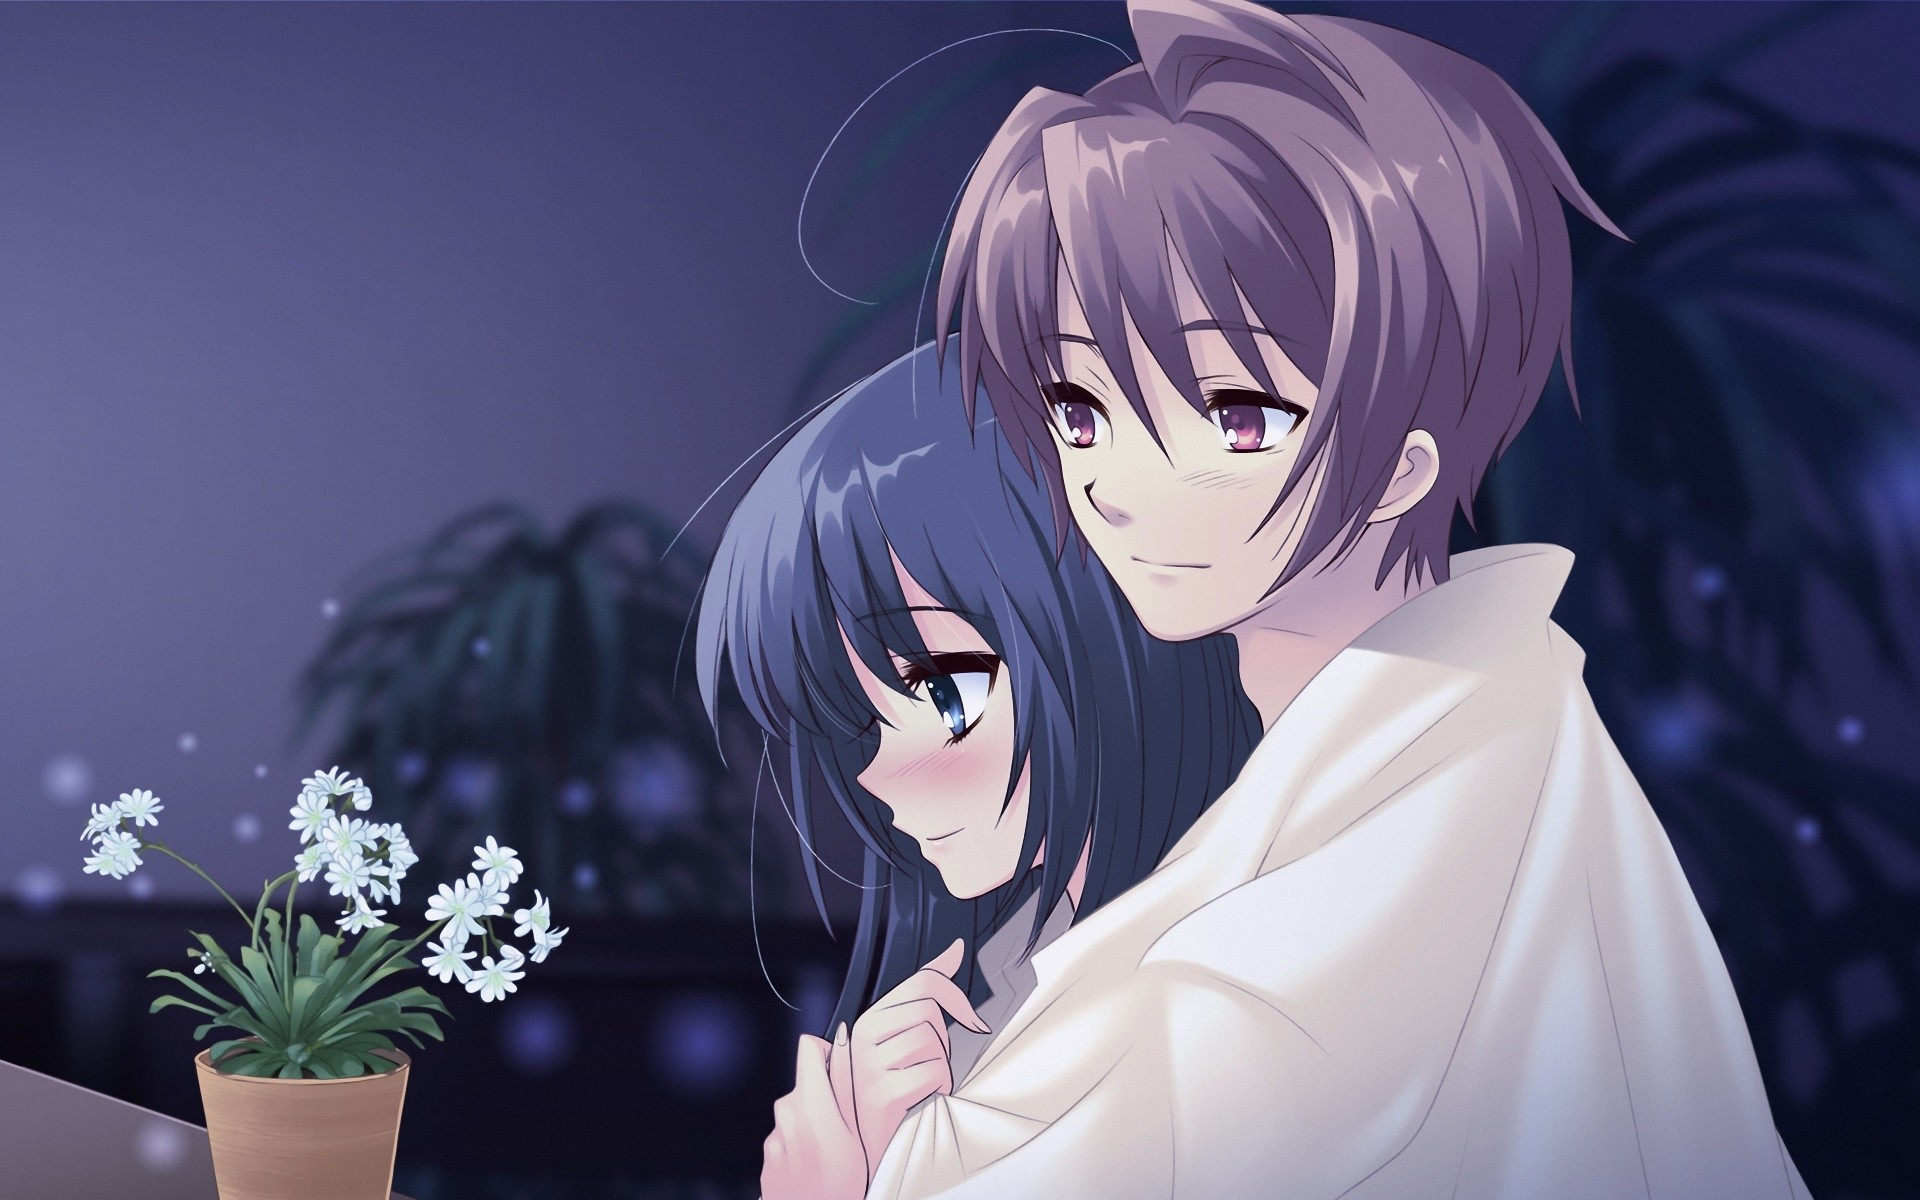 Res: 1920x1200, Cute Anime Couple HD Wallpapers.